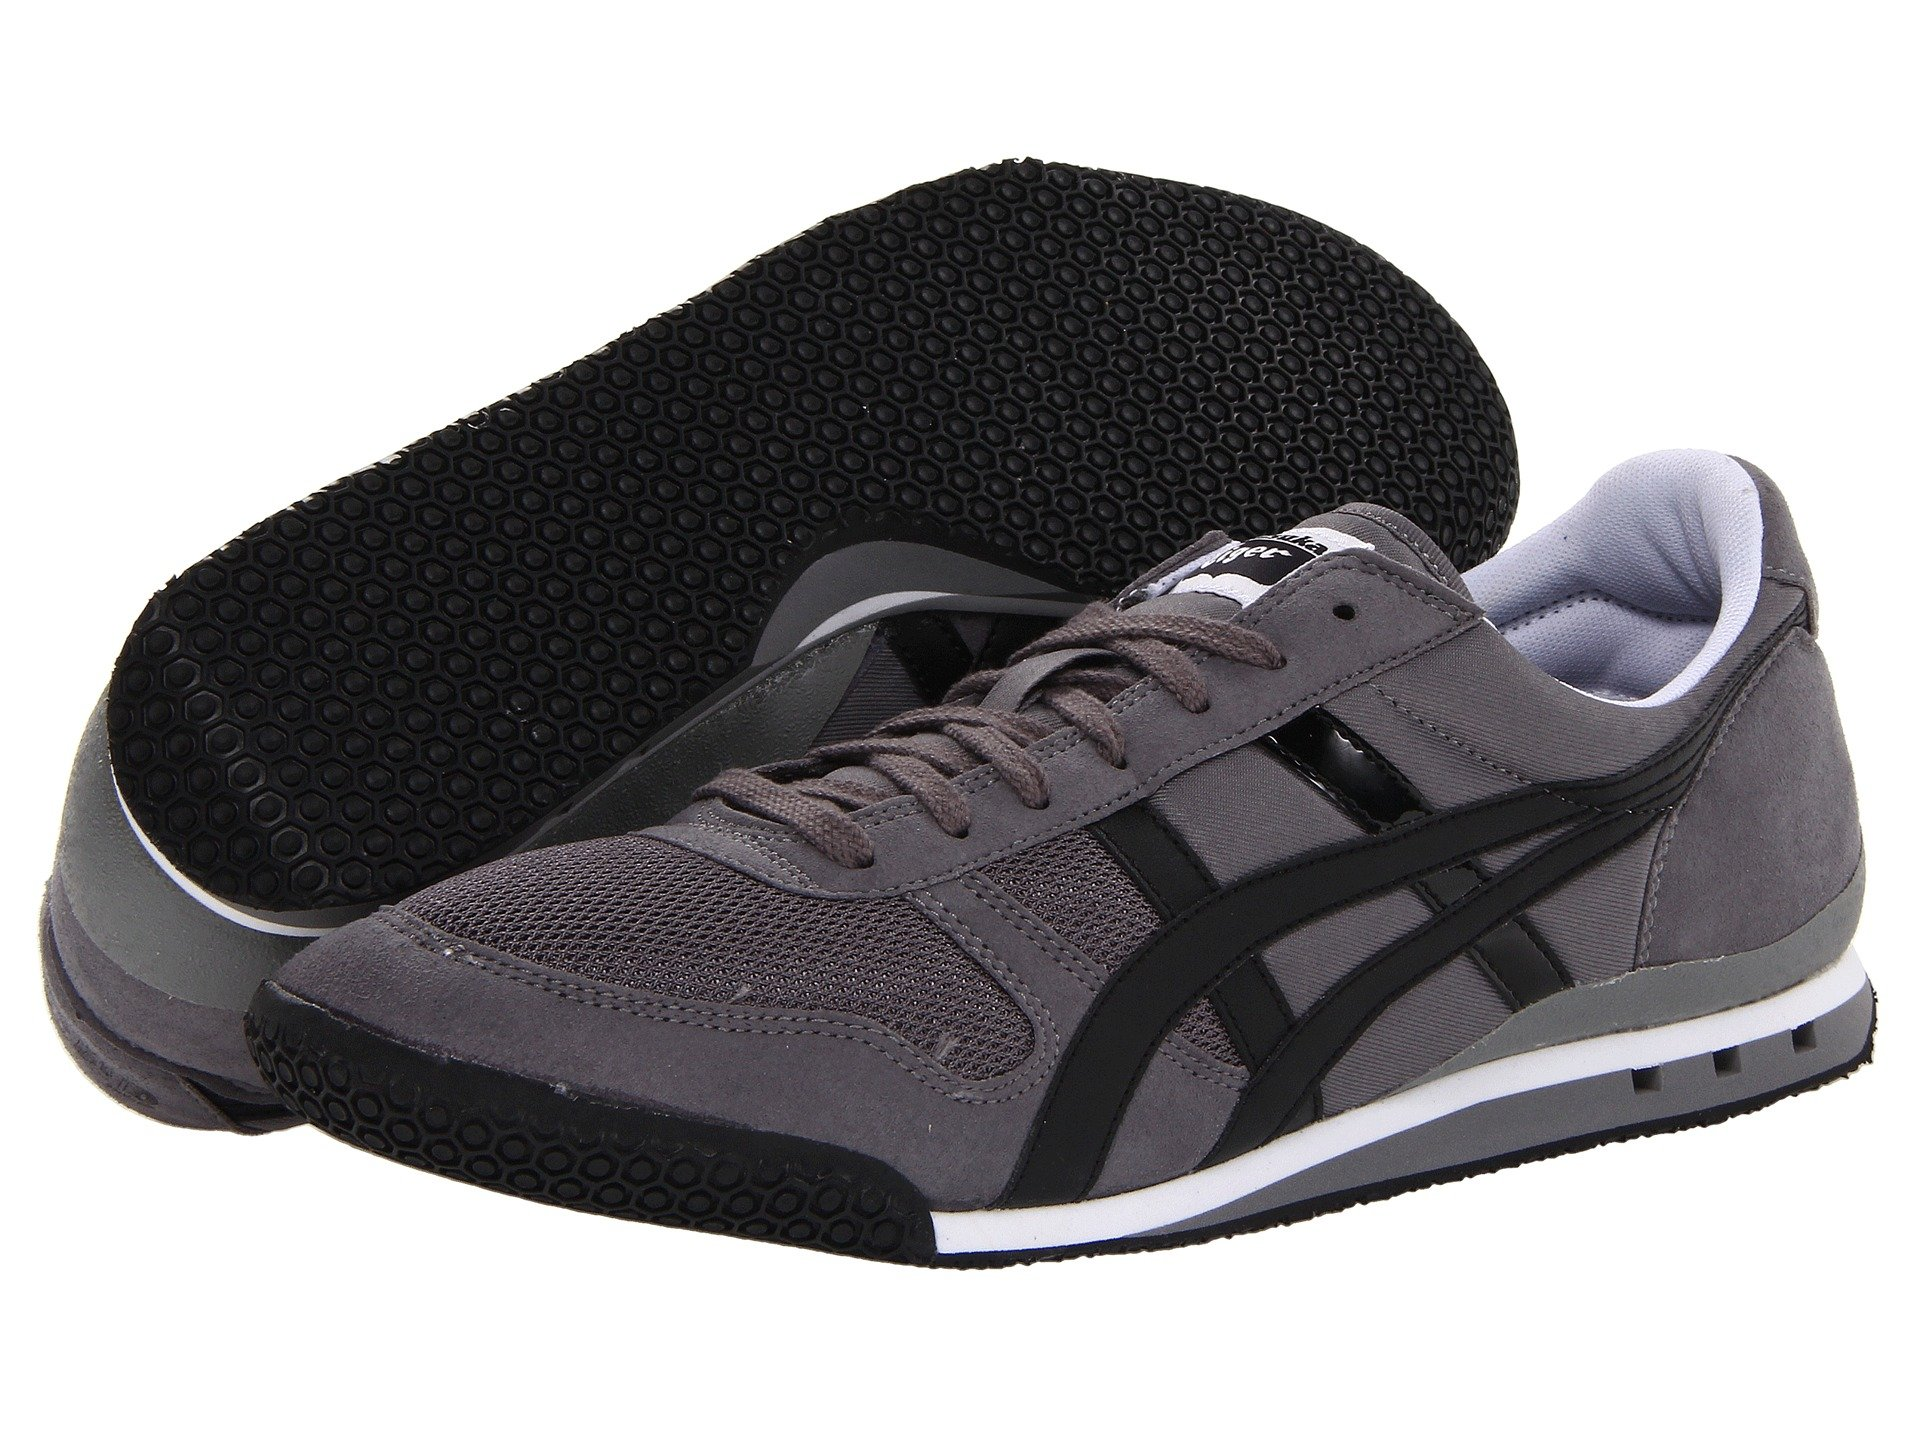 on sale f20f9 6d2e2 Zappos: Onitsuka Tiger Ultimate 81 Sneakers – 50% Off + Free ...